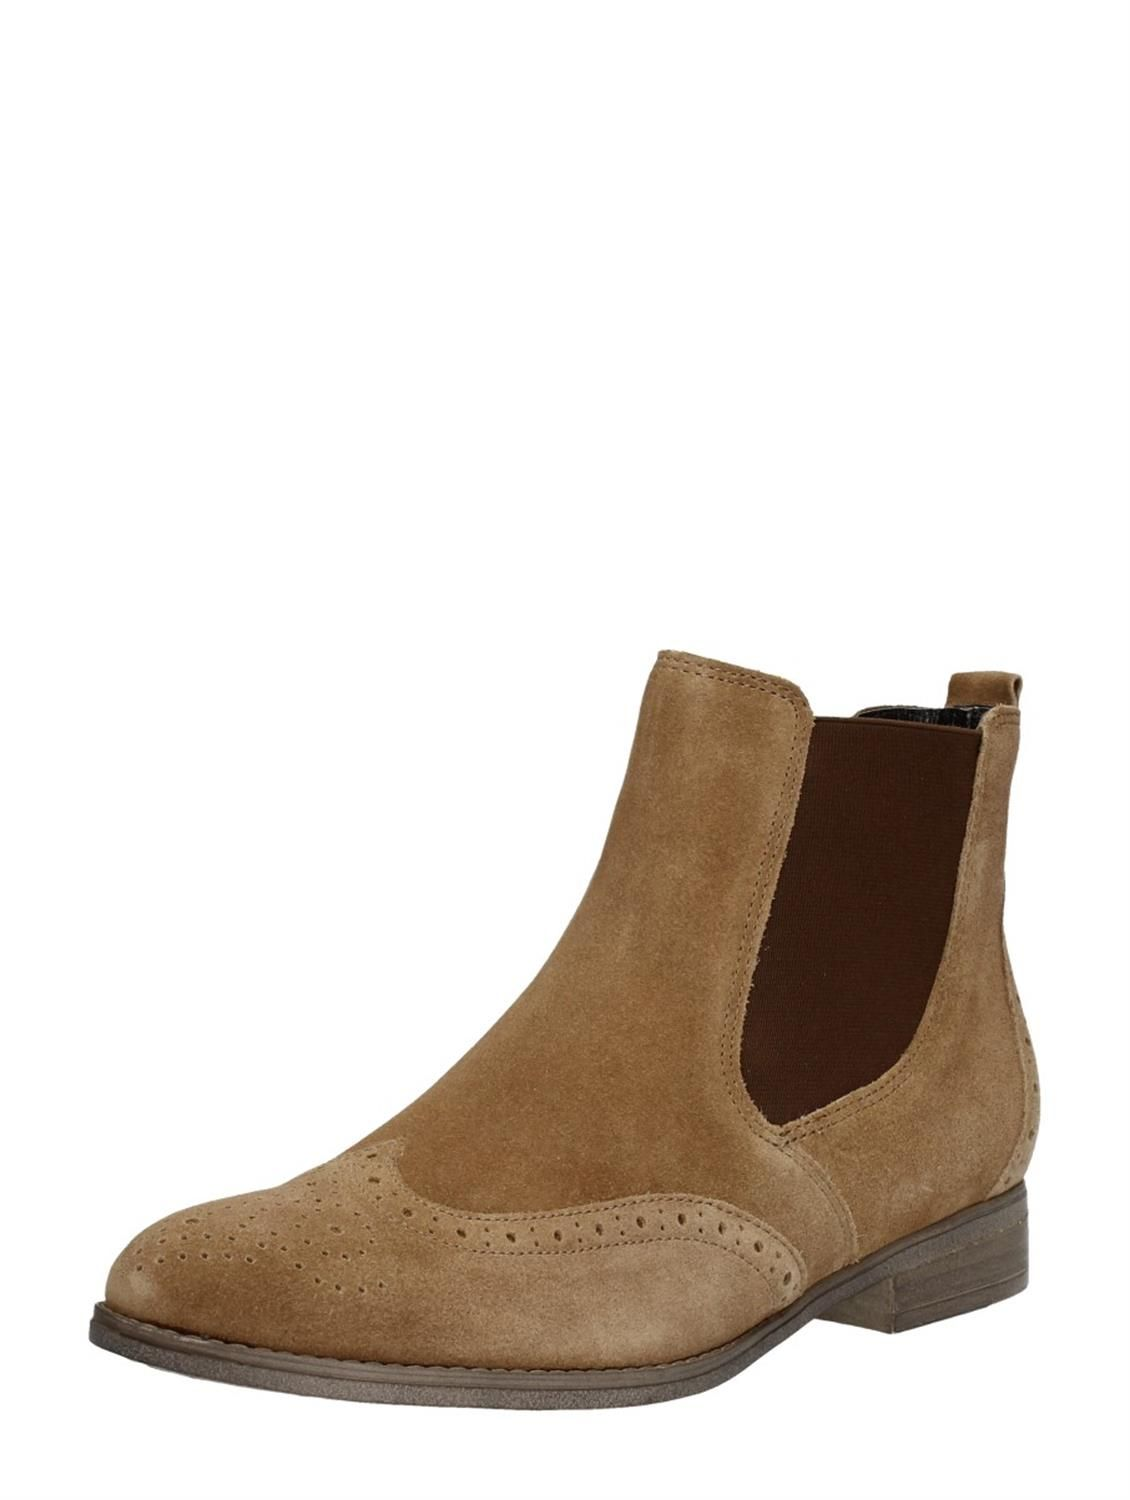 Gabor Sneakers 25 43 Best Ideas About Gabor Boots On Pinterest Gabor